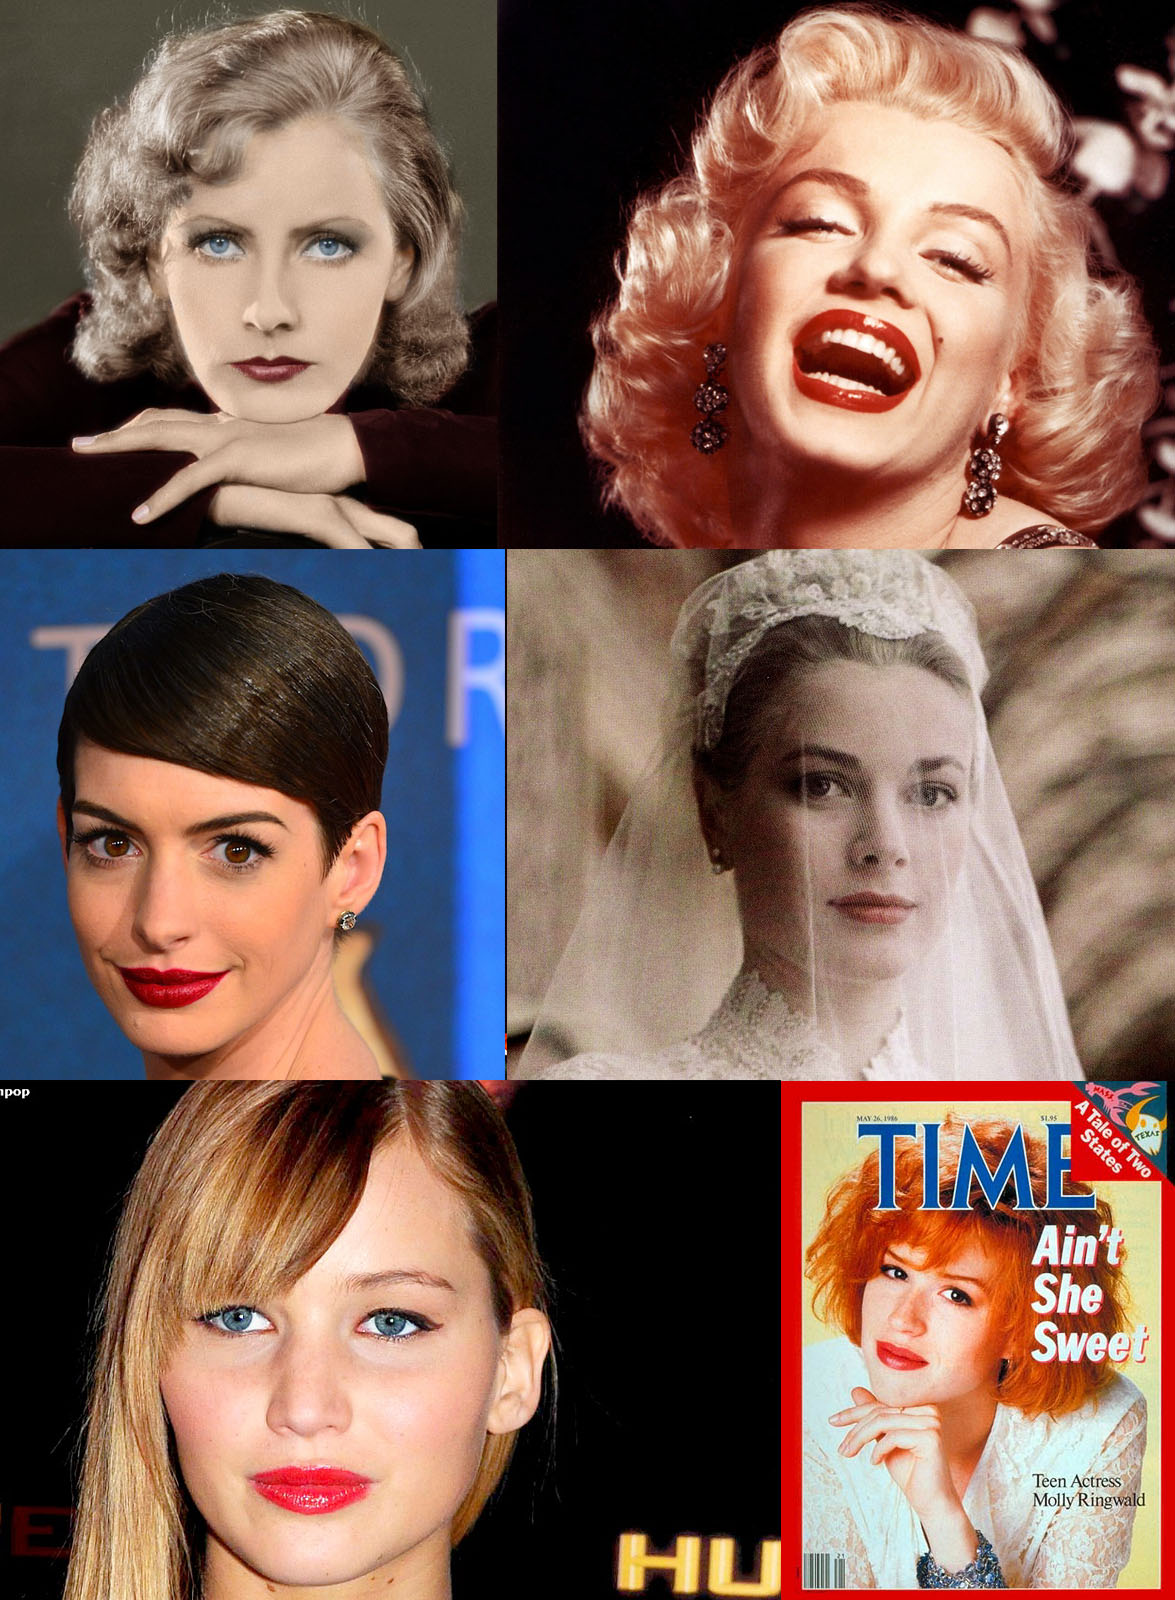 Clockwise from top left: Greta Garbo, Marilyn Monroe, Grace Kelly, Molly Ringwald, Jennifer Lawrence and Anne Hathaway.